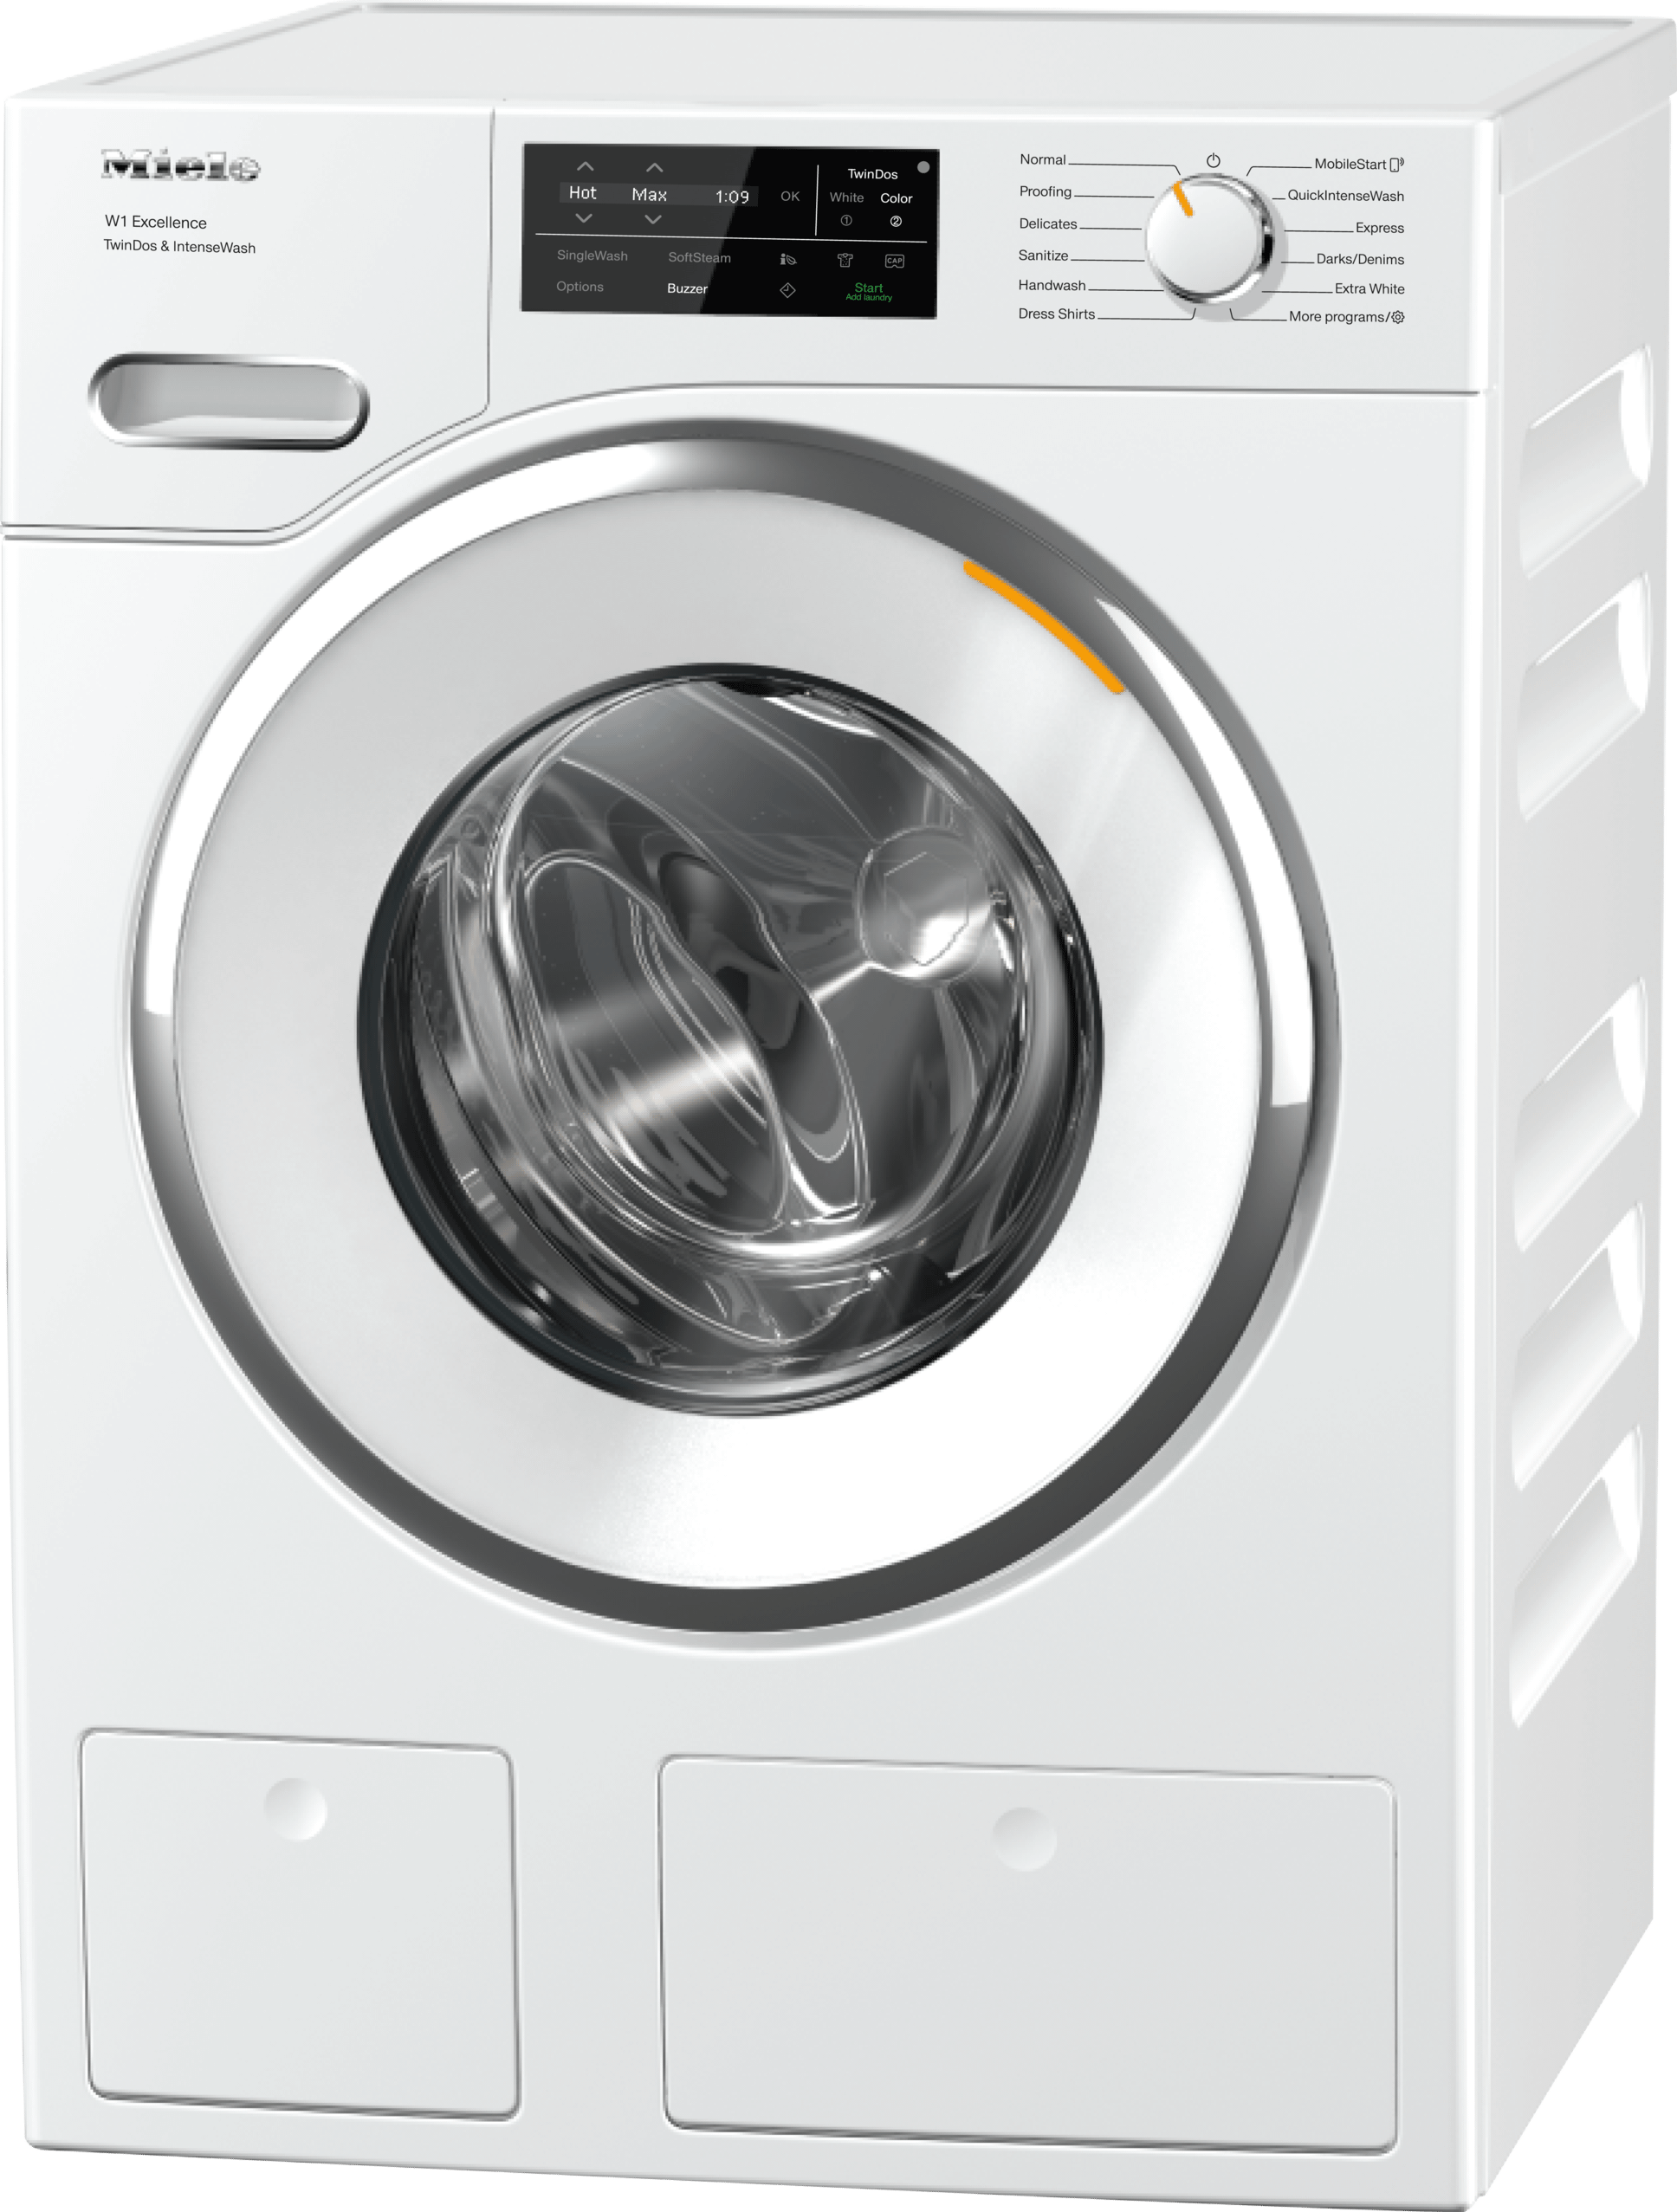 WXI 860 WCS TDos & IntenseWash - W1 Front-loading washing machine with TwinDos, IntenseWash, and Miele@home for ultimate cleanliness and comfort.